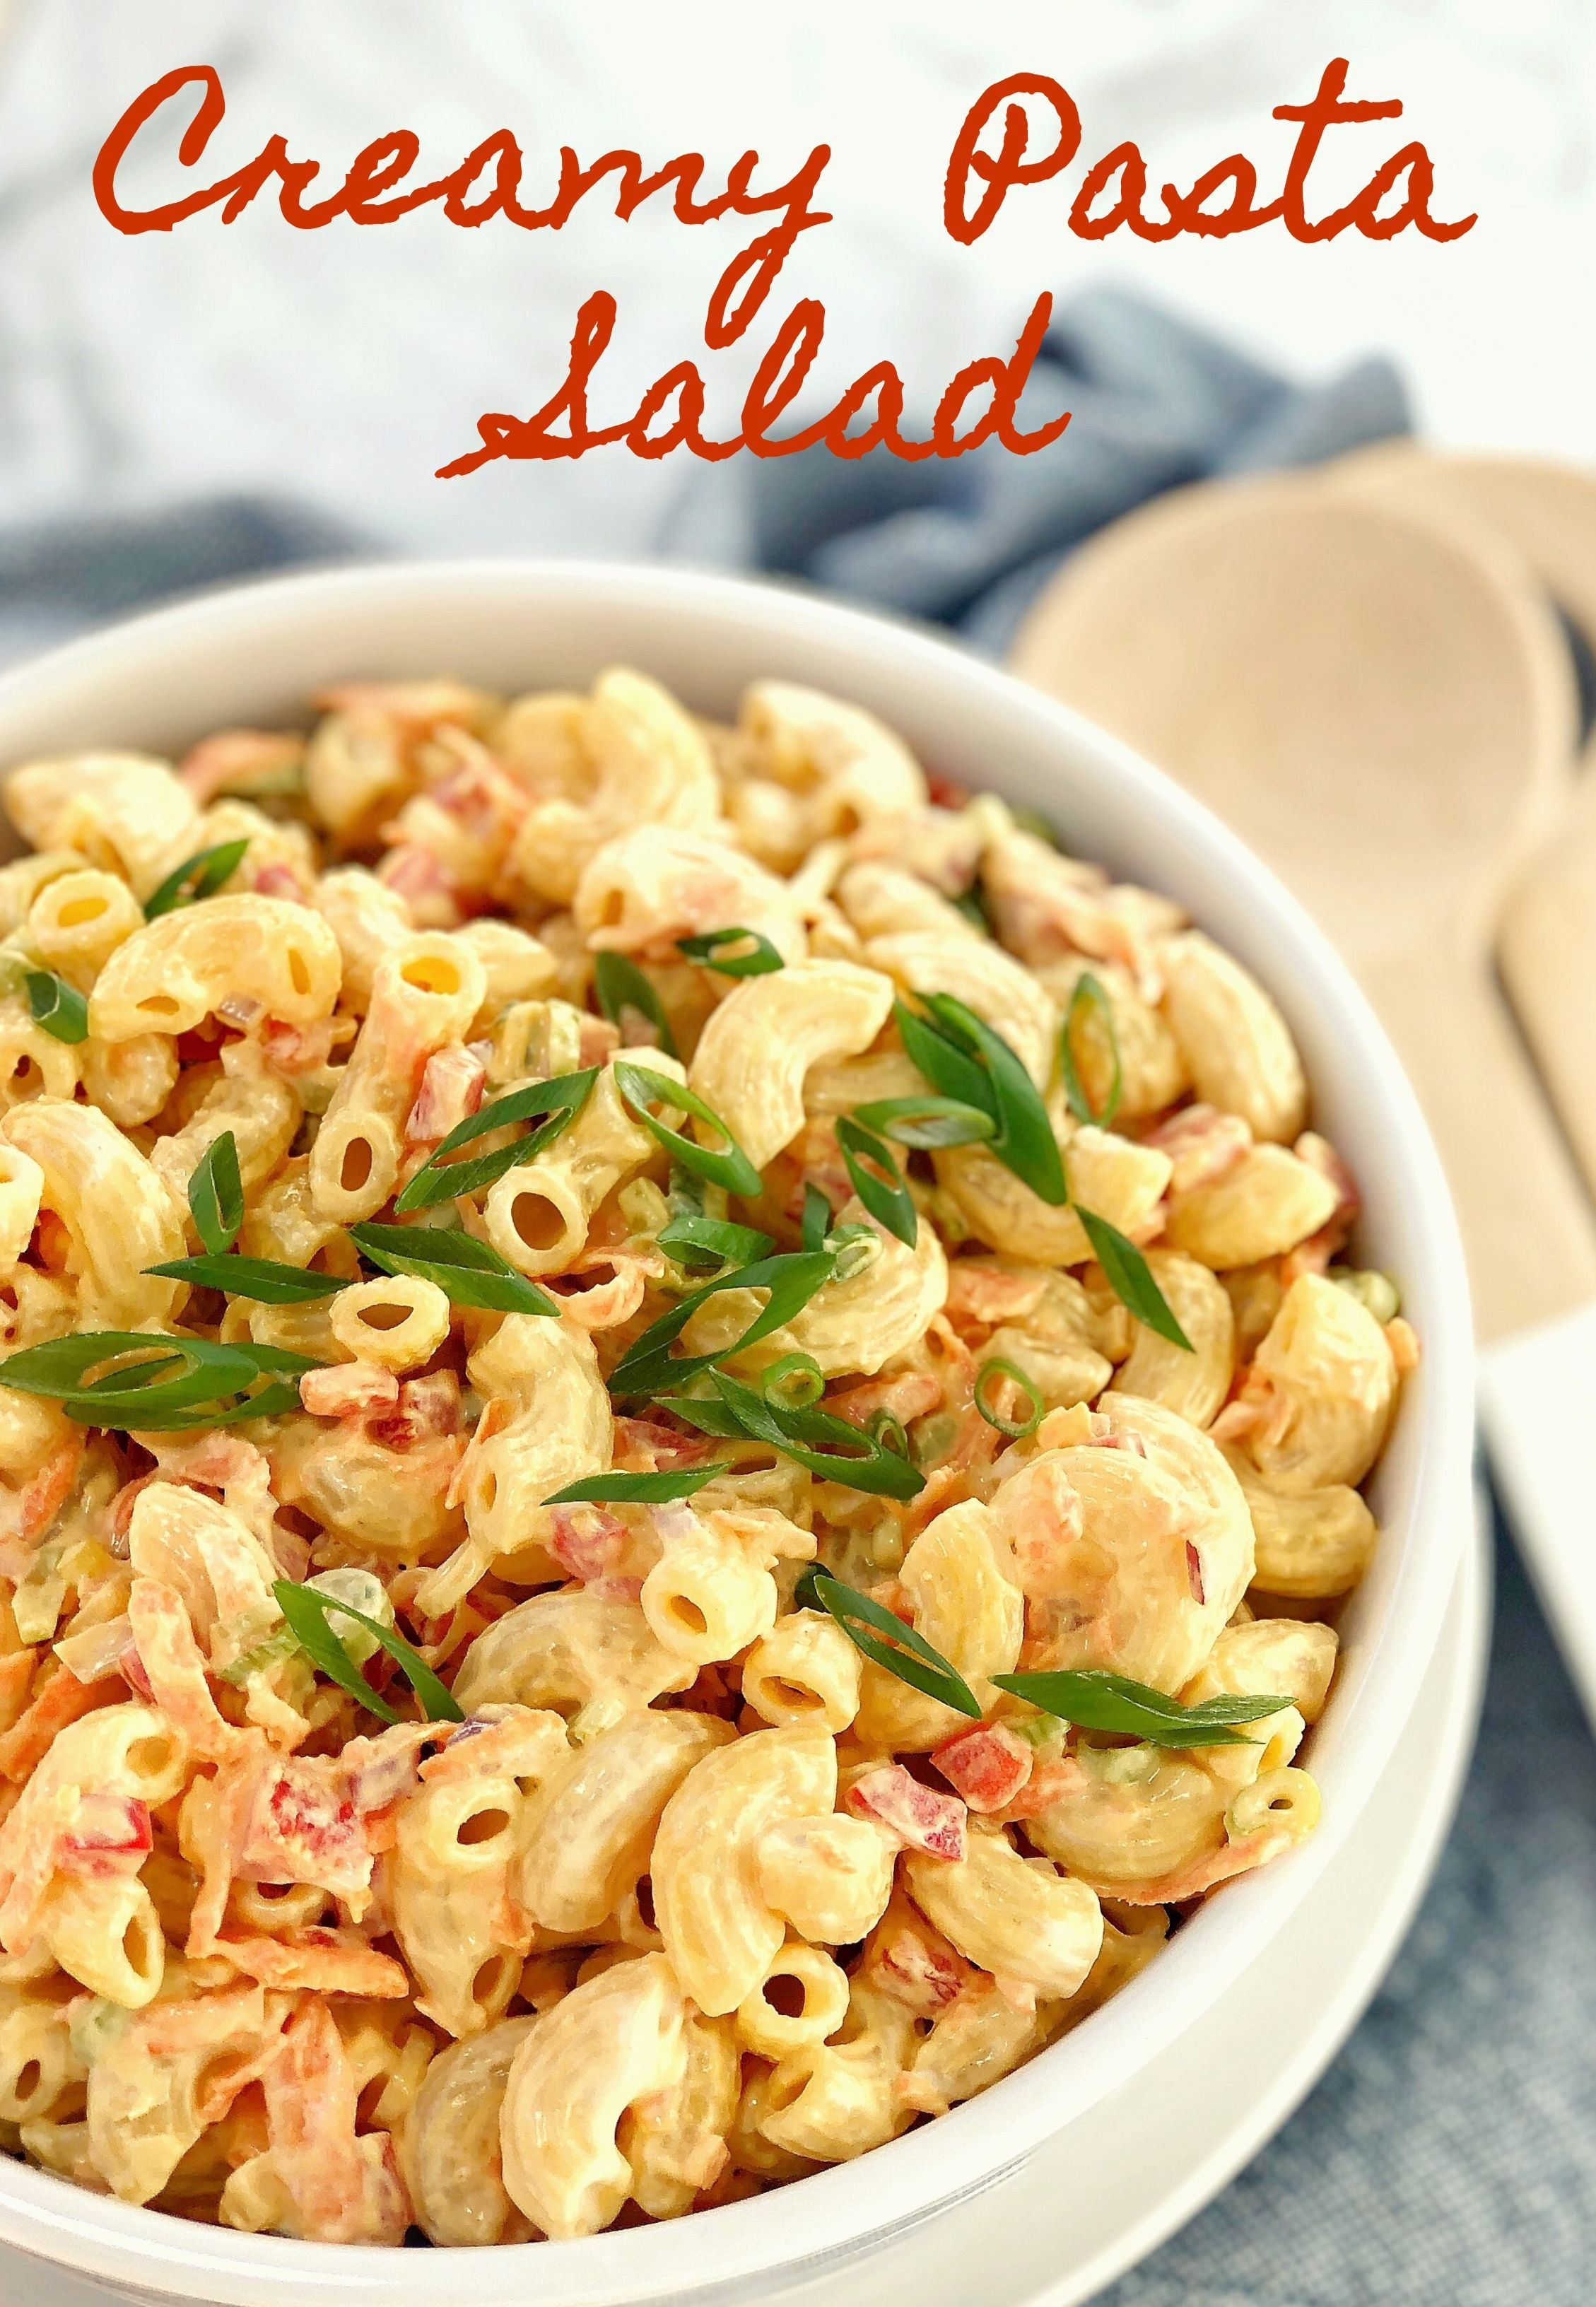 Creamy Macaroni Salad Fresh Veggies Combined With Elbow Pasta Then Add A Creamy Dressing Of Mayonnaise Elbow Pasta Recipes Creamy Macaroni Salad Tasty Pasta